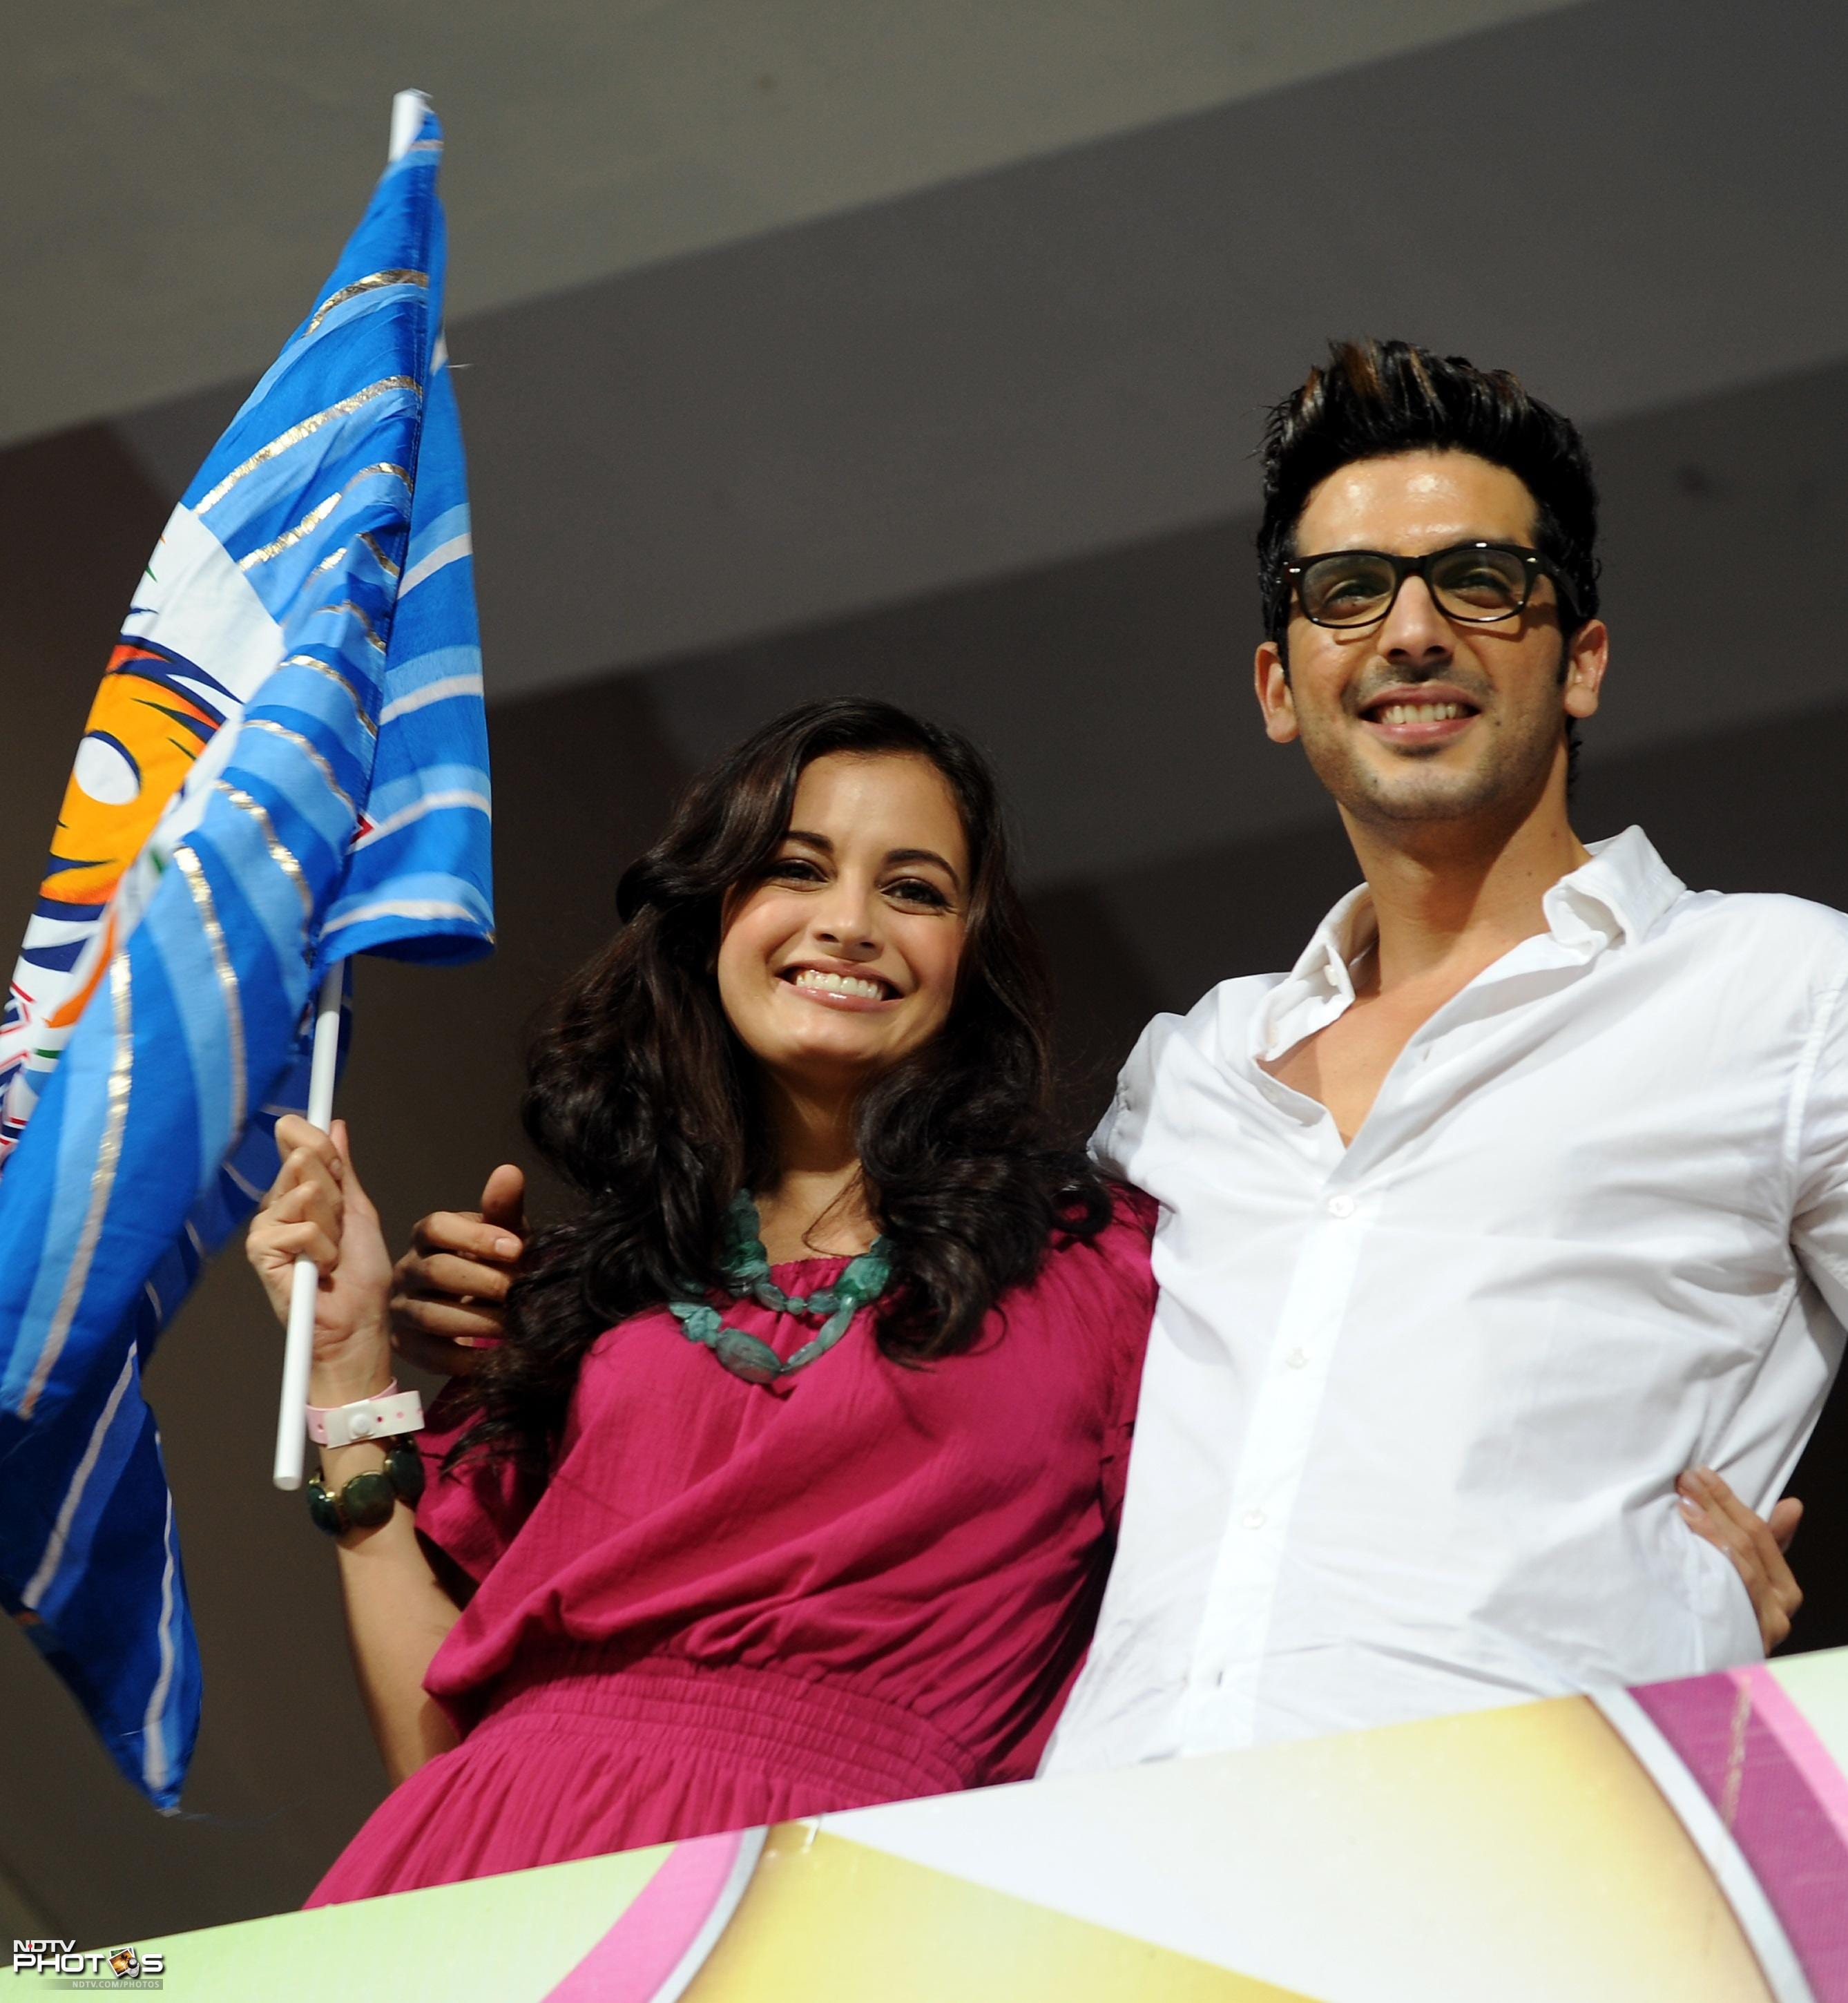 Bollywood actors Zayed Khan and Dia Mirza wave the Mumbai Indians team flags before the start of the Champions League Twenty20 Group A match between Mumbai Indians and Trinidad and Tobago at the M. Chinnaswamy Stadium in Bangalore. (AFP Photo)